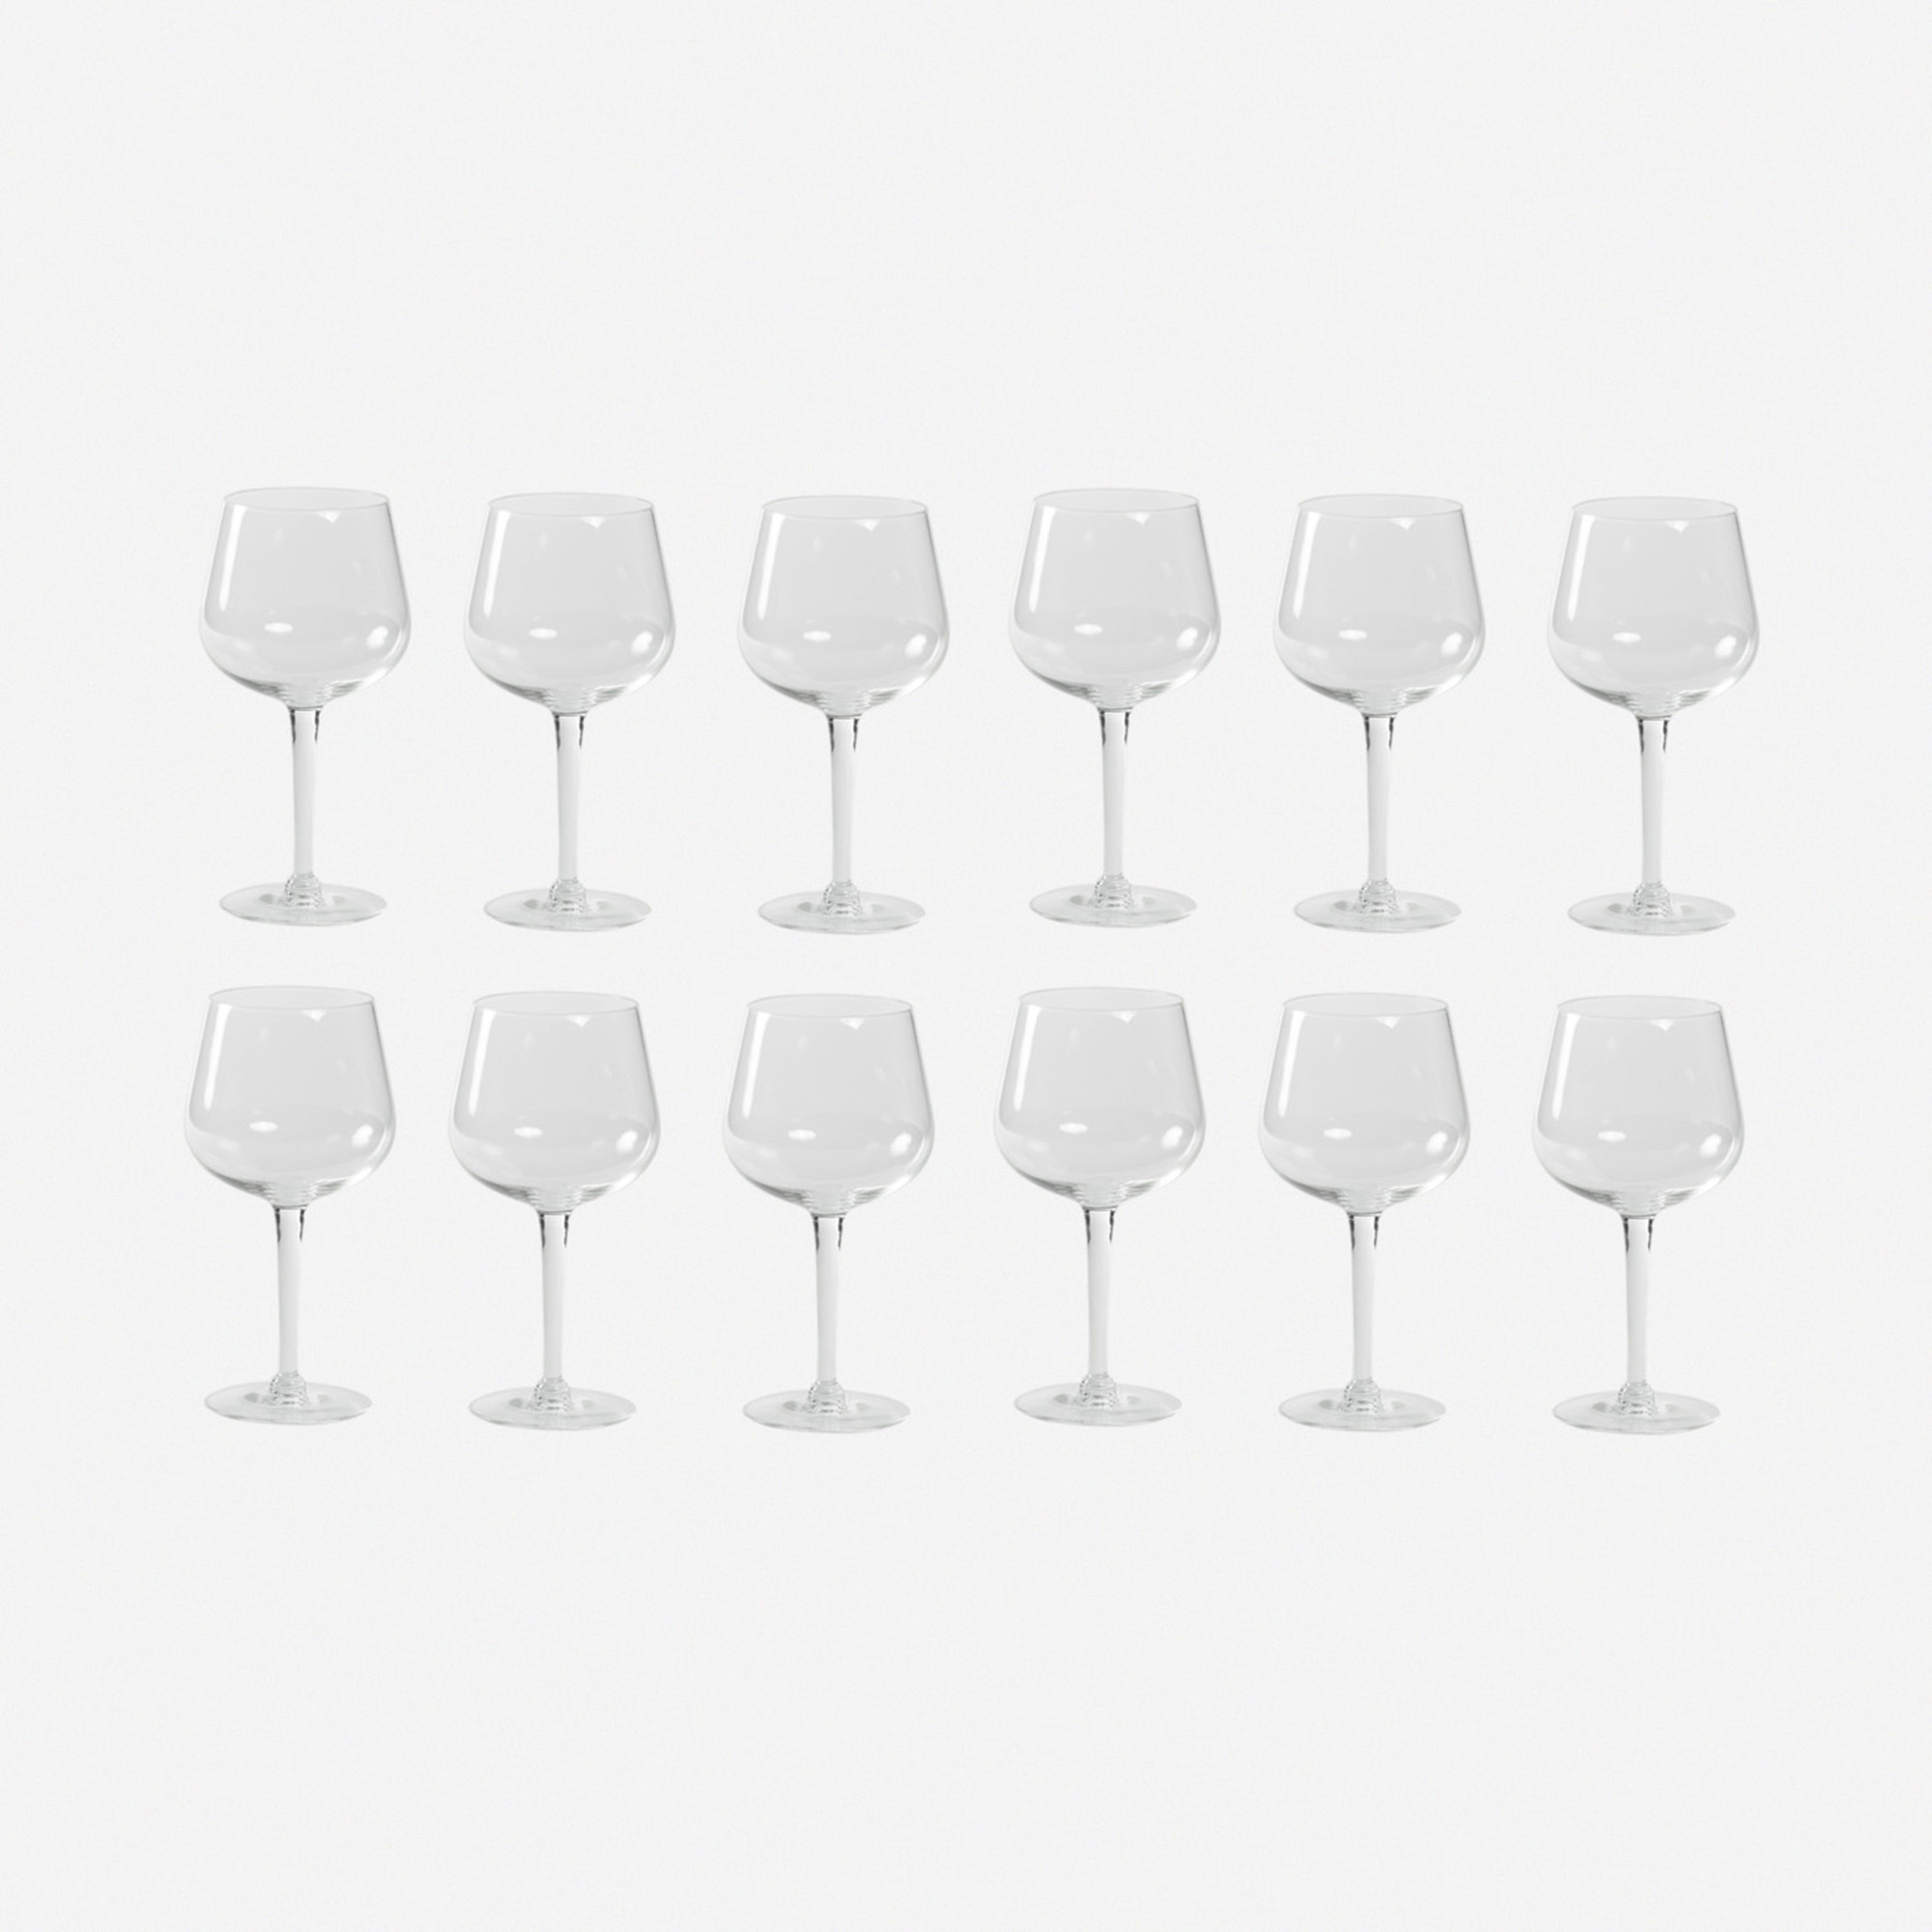 148: Garth and Ada Louise Huxtable / White Wine glasses from The Four Seasons, set of twelve (1 of 1)